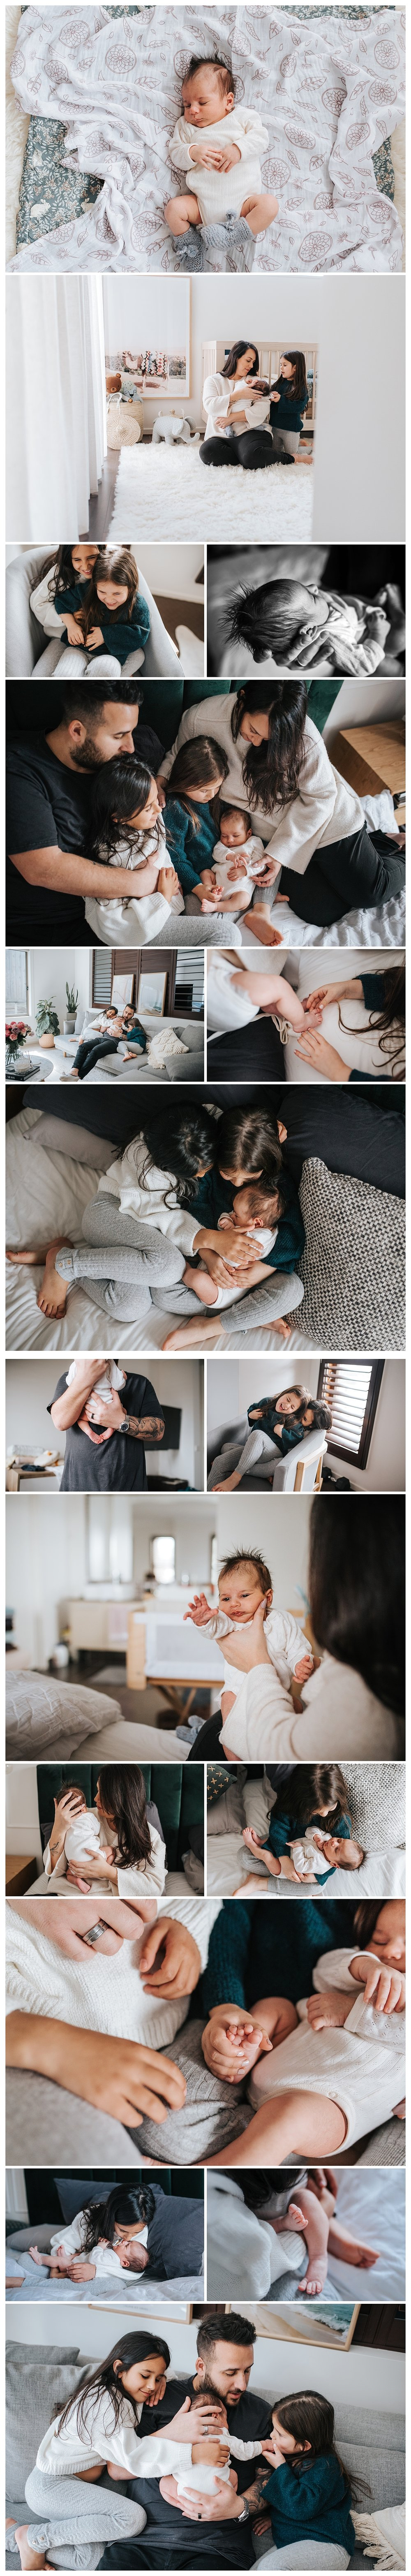 natural newborn photographer melbourne